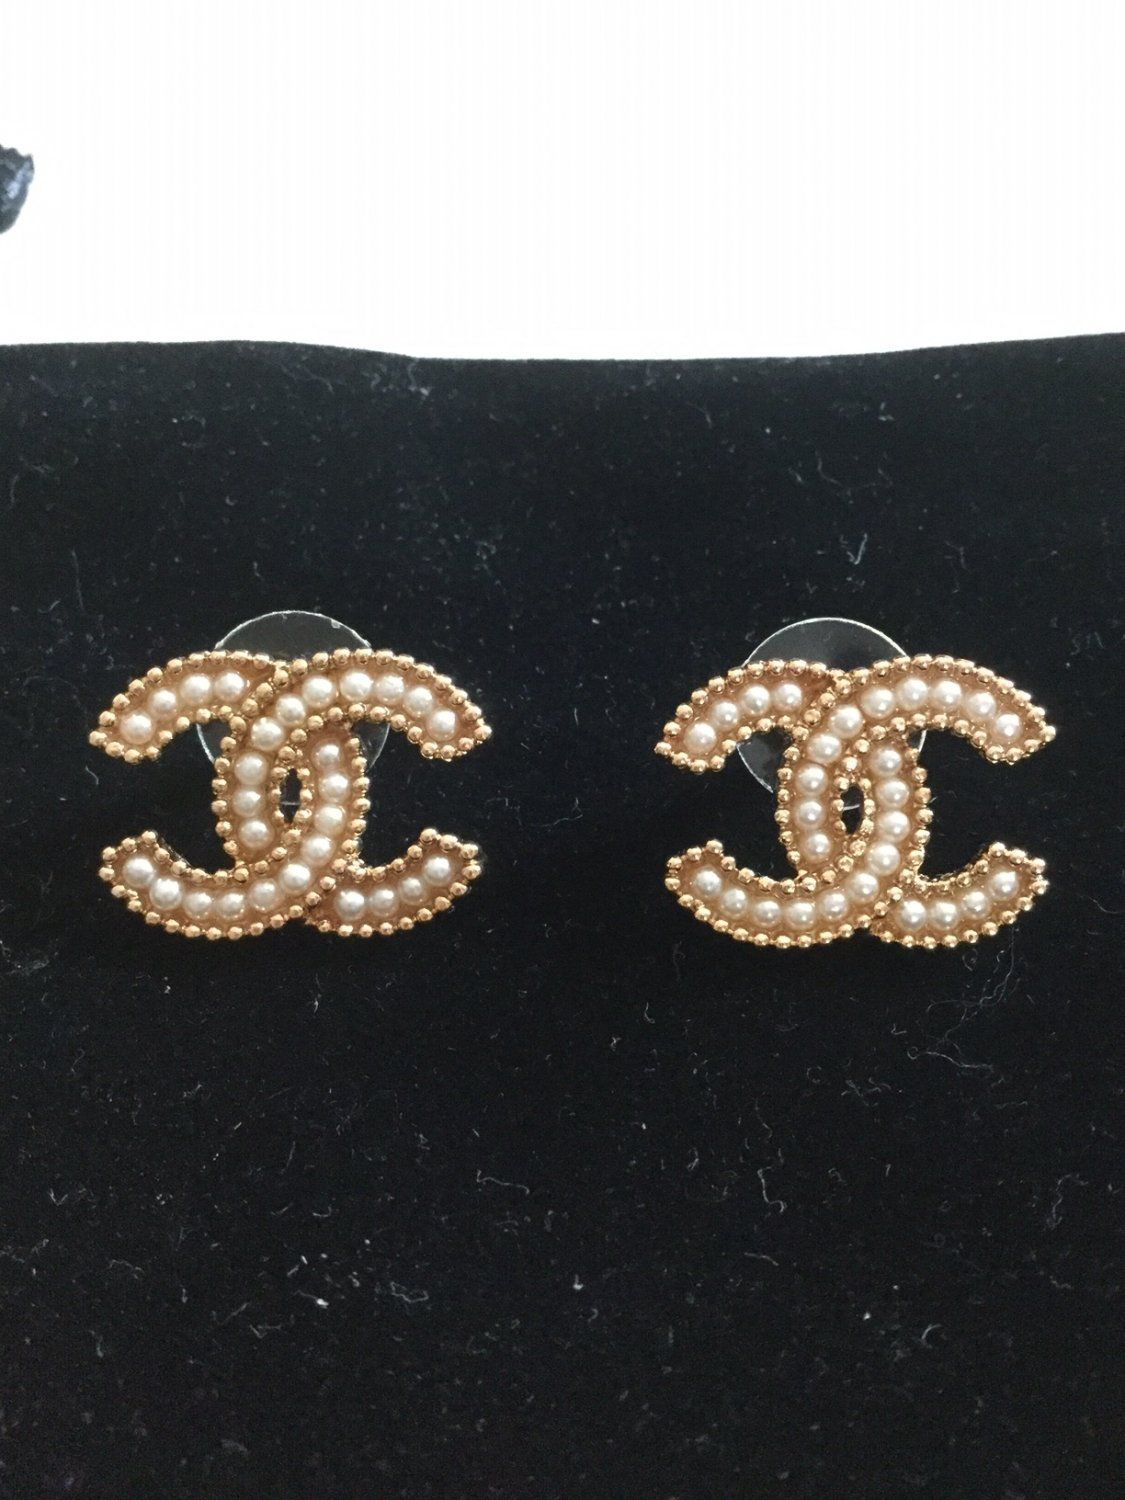 5244fb9cb CHANEL+Seed+Pearl+CC+Stud+Earrings+Gold+Metal+Medium+Size+Hallmark+NIB!